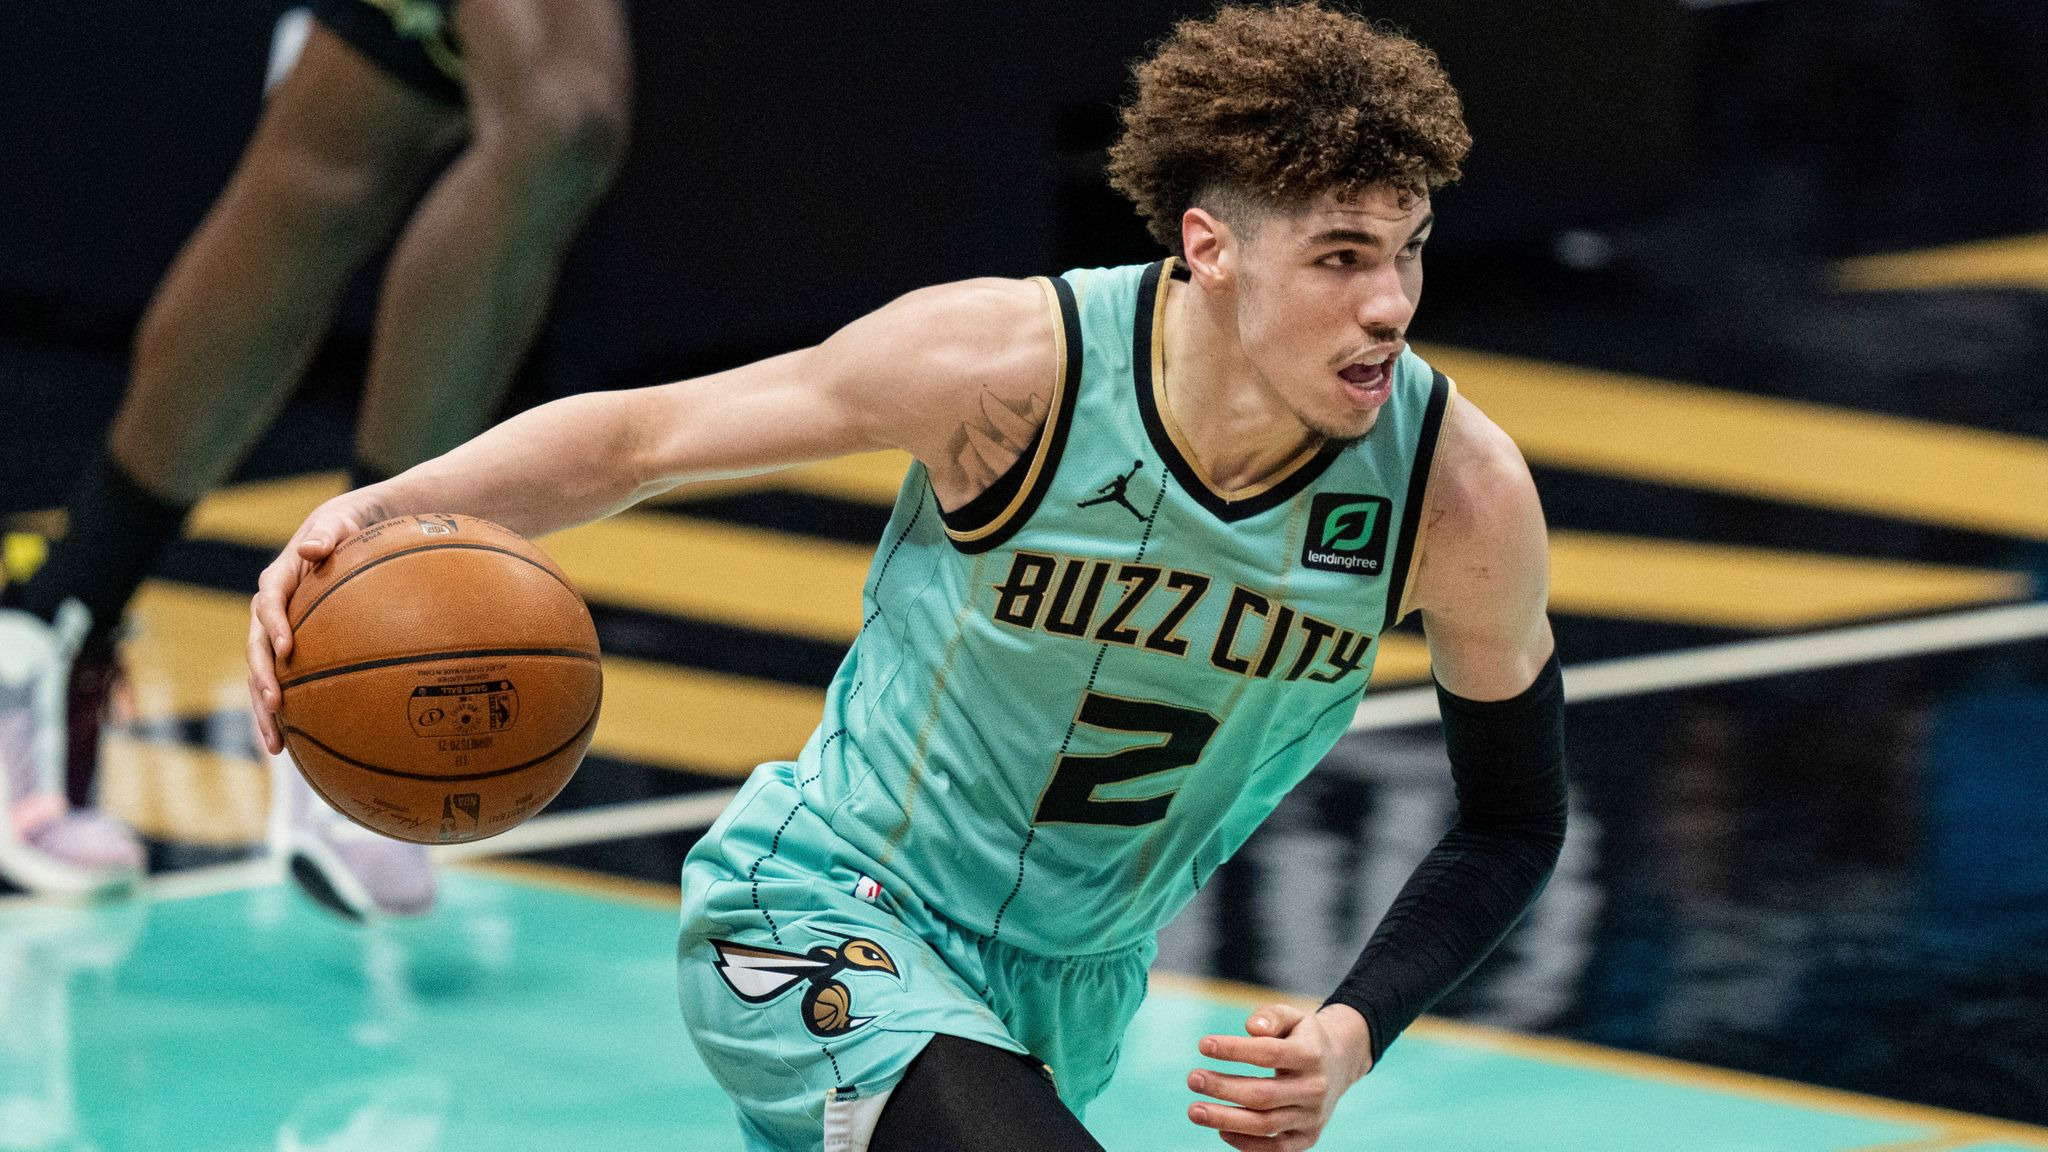 Charlotte's Lamelo Ball wins 2020-21 NBA Rookie of the Year award